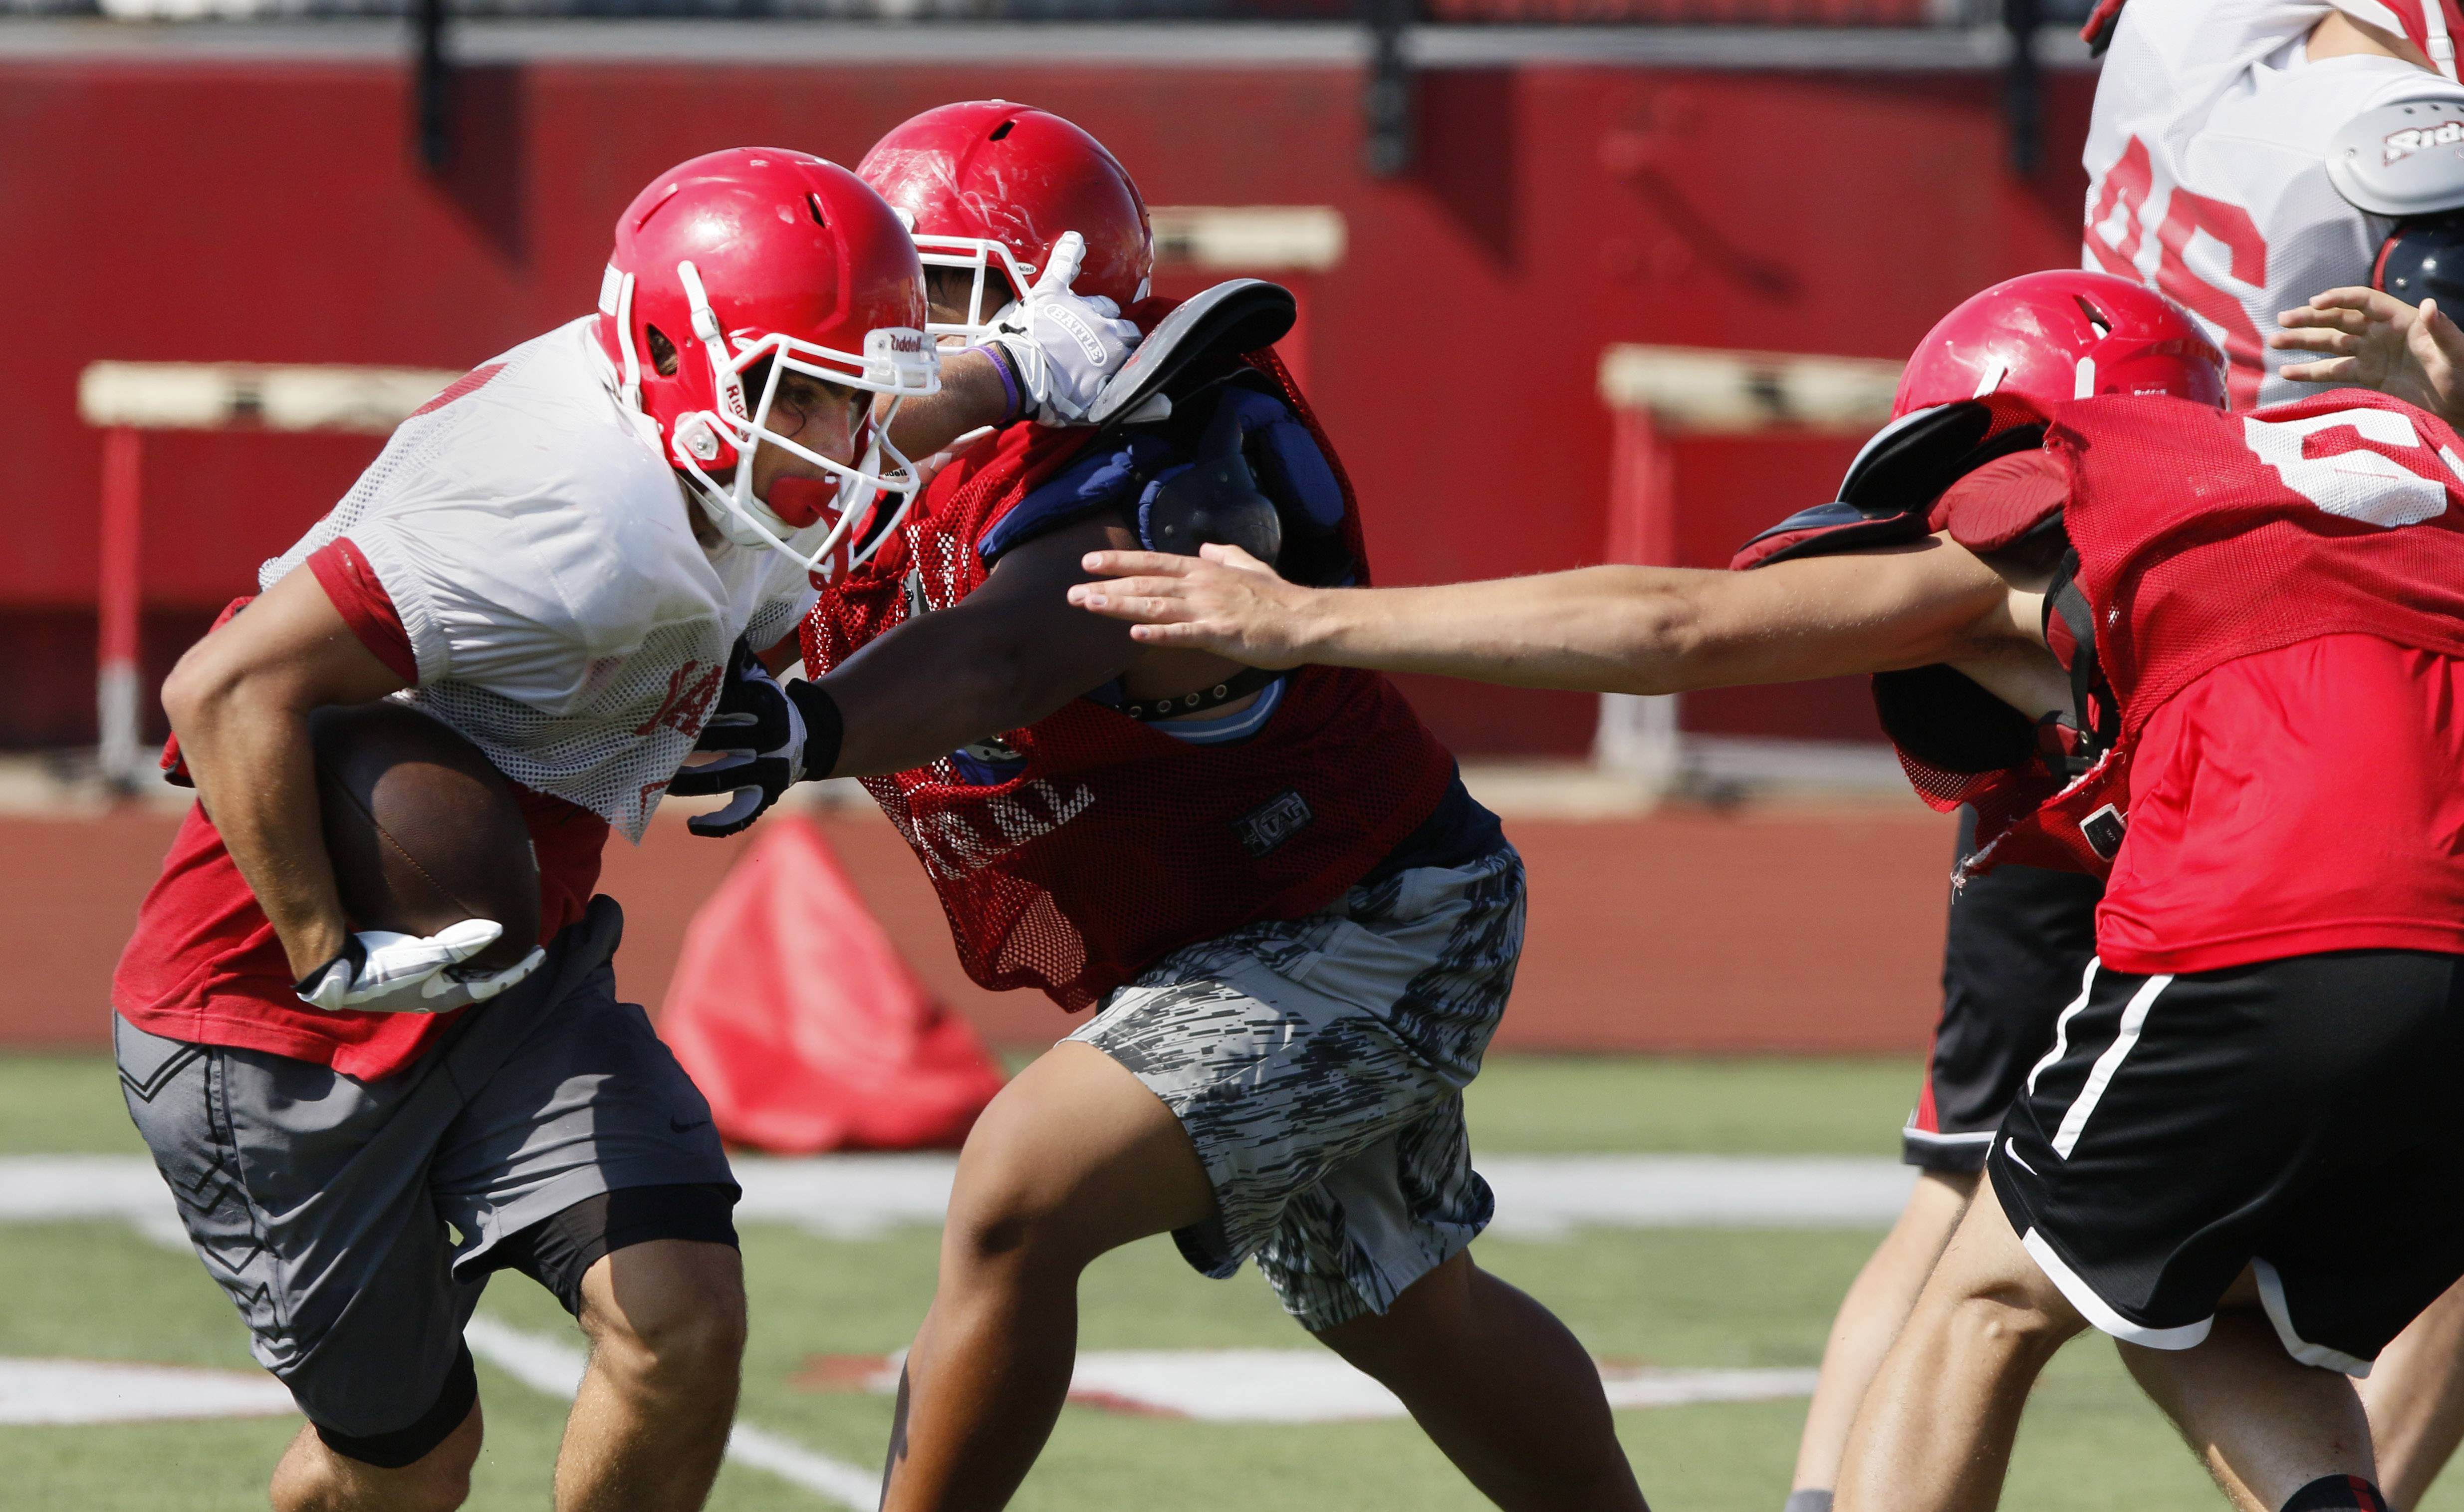 Naperville Central's A.J. Deinhart navigates his way through the defense during the first week of football practice.